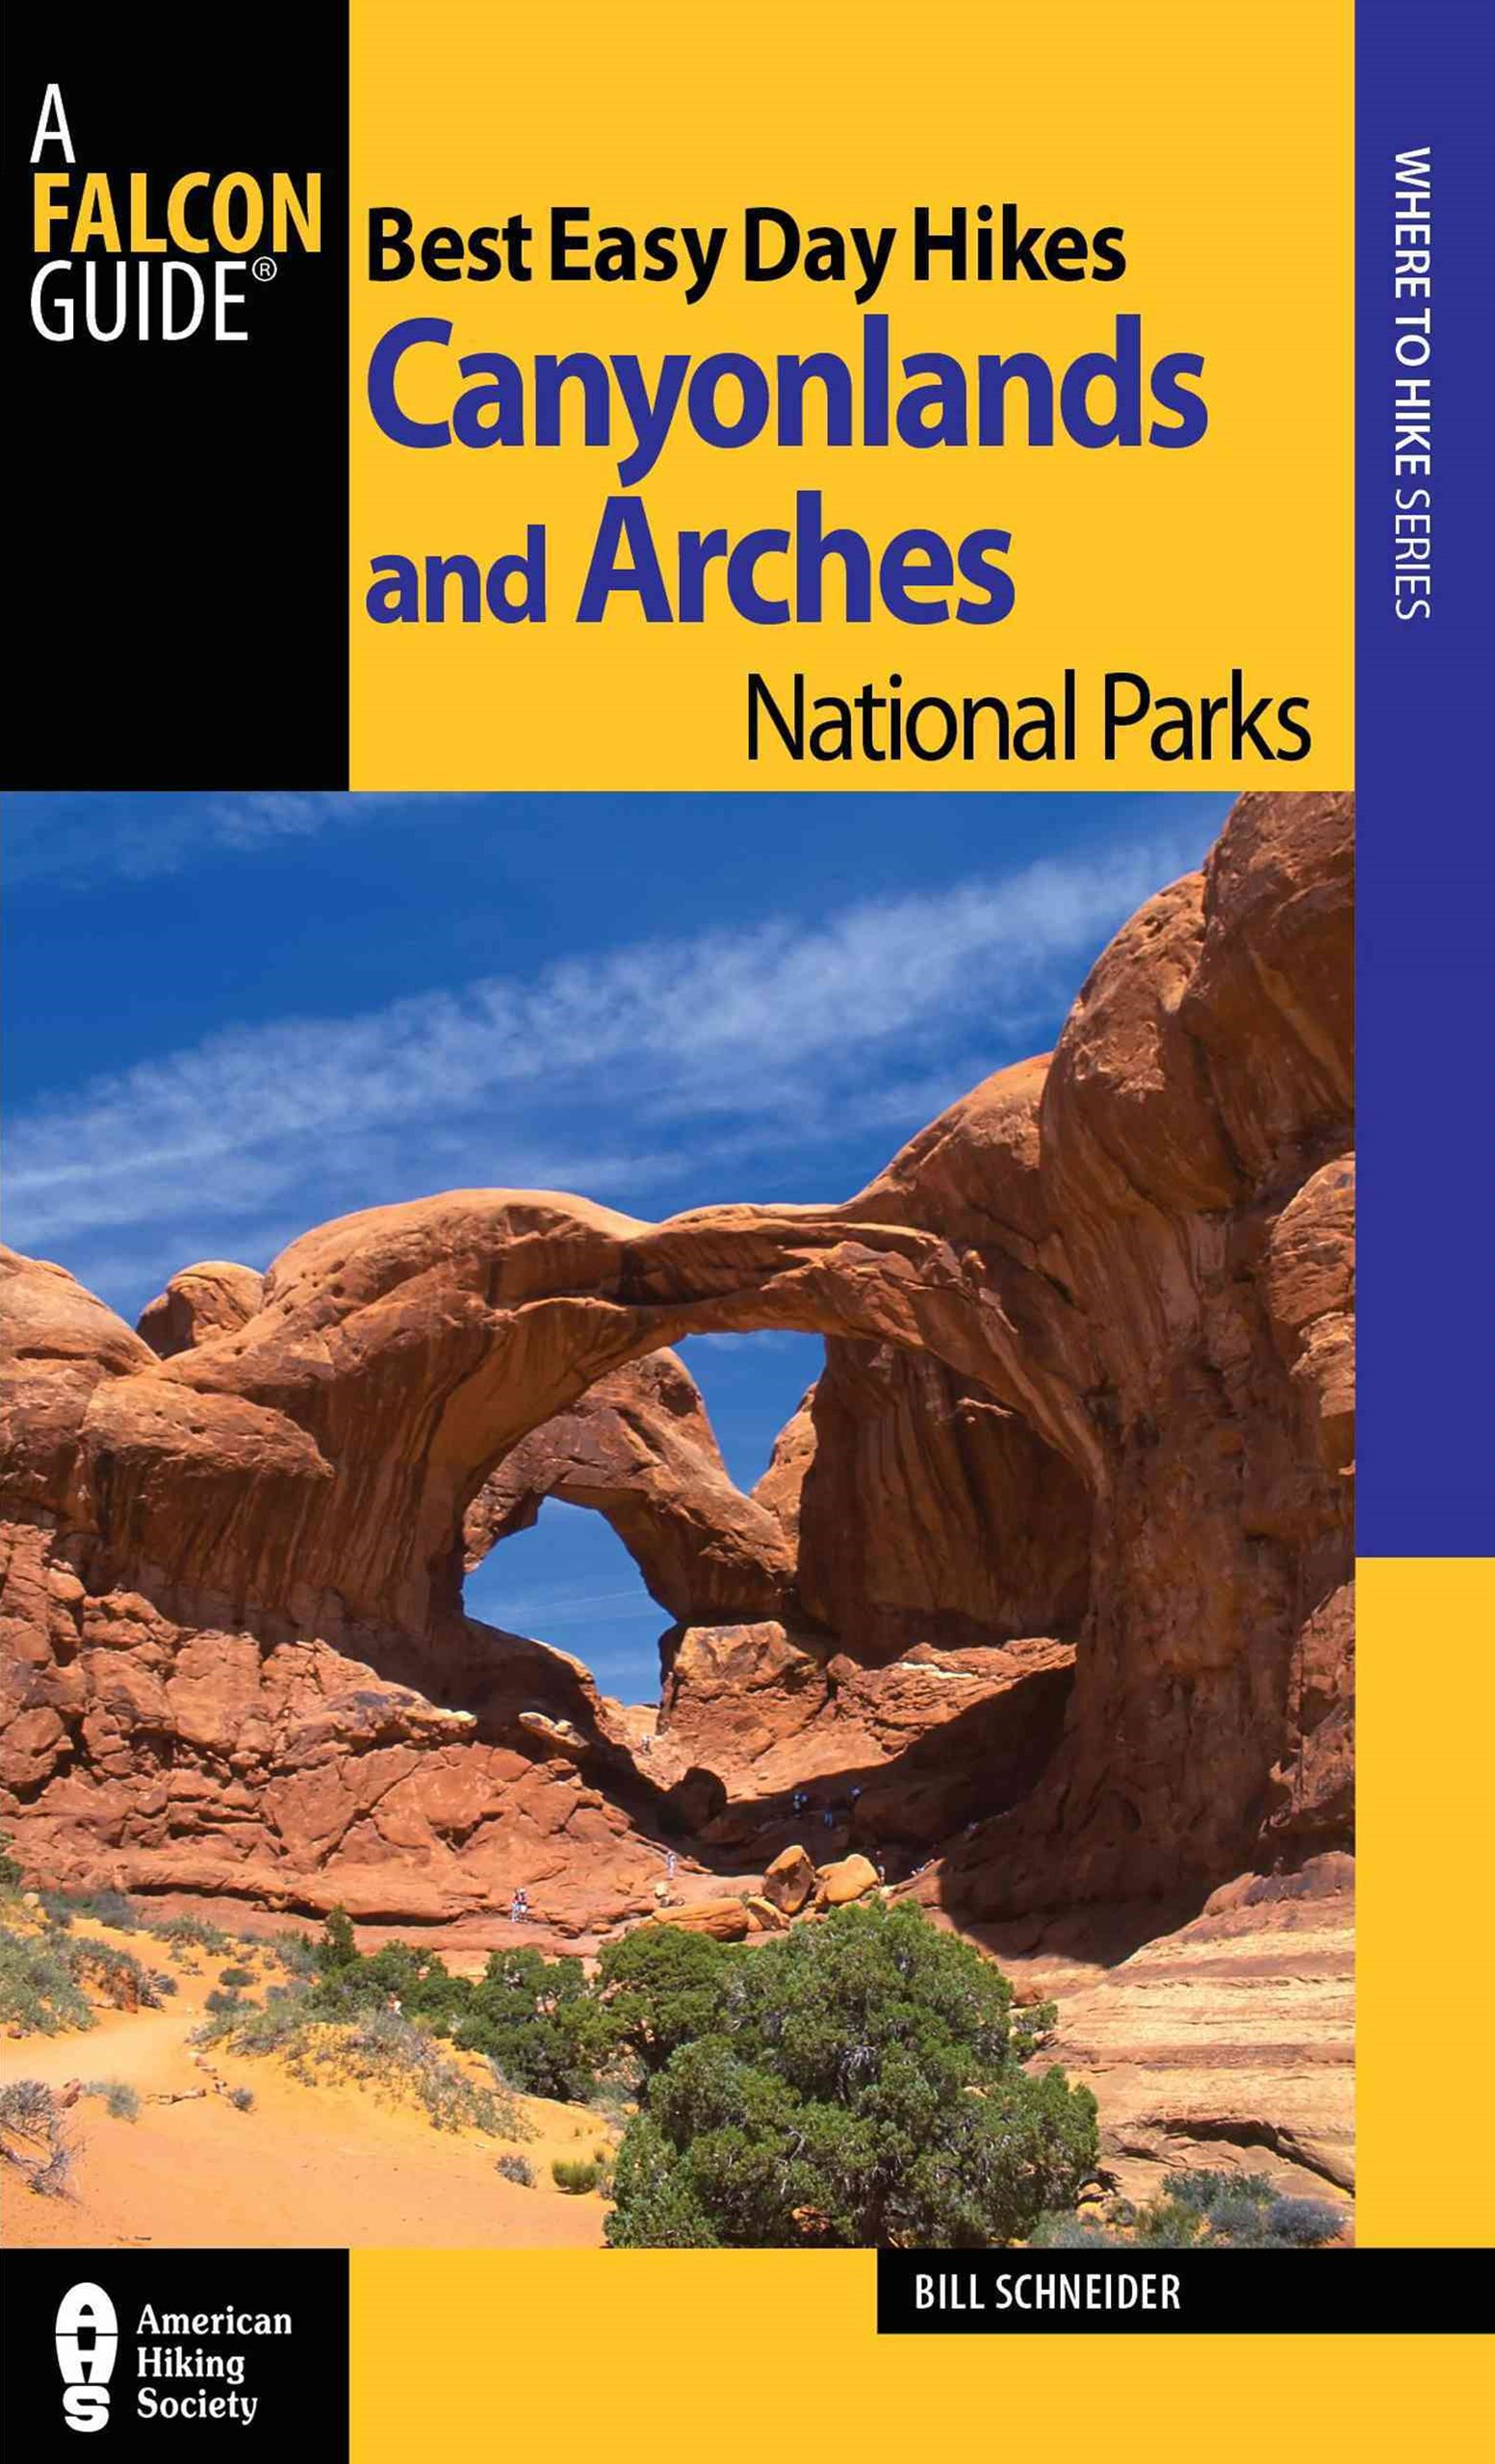 Canyonlands and Arches National Parks